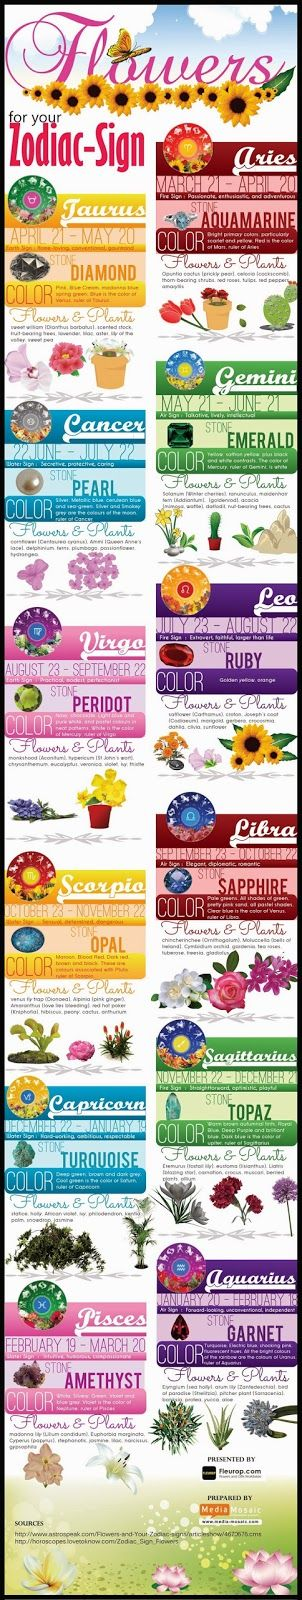 Fleurop-Interflora presents this infographic \u0027Flowers for Your